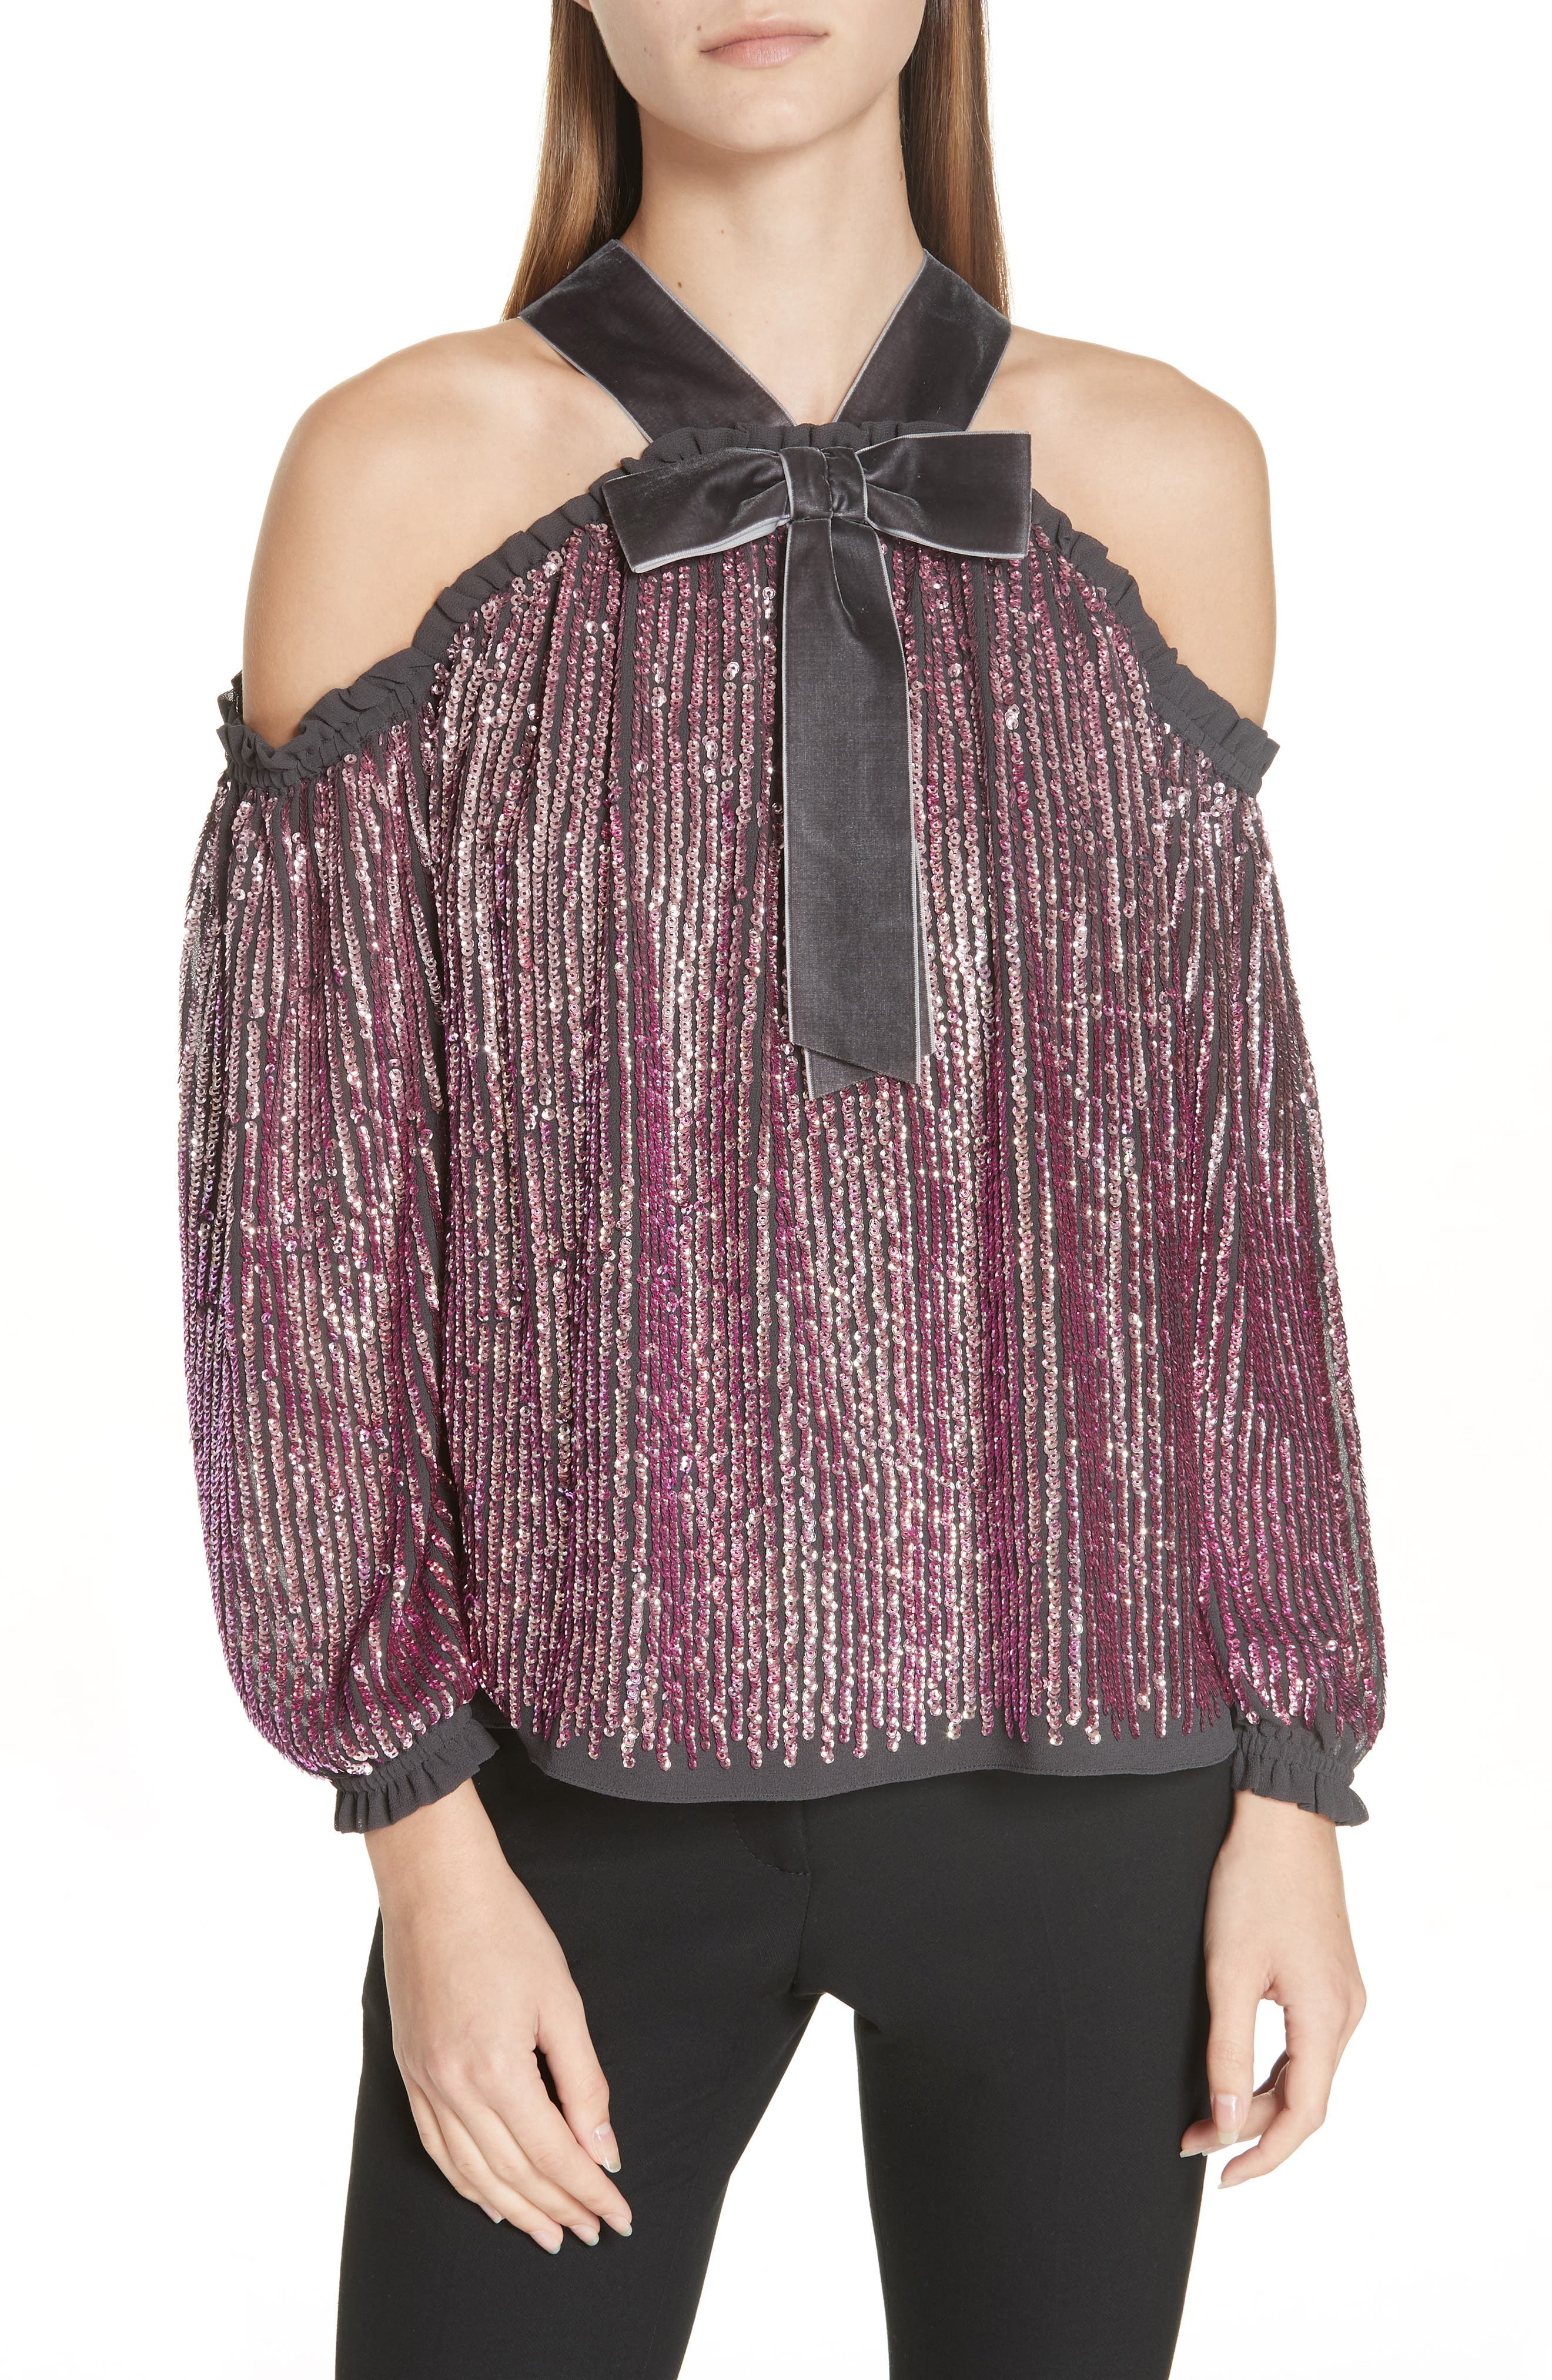 NEEDLE & THREAD, Kaleidoscope Cold Shoulder Top, Main thumbnail 1, color, GRAPHITE